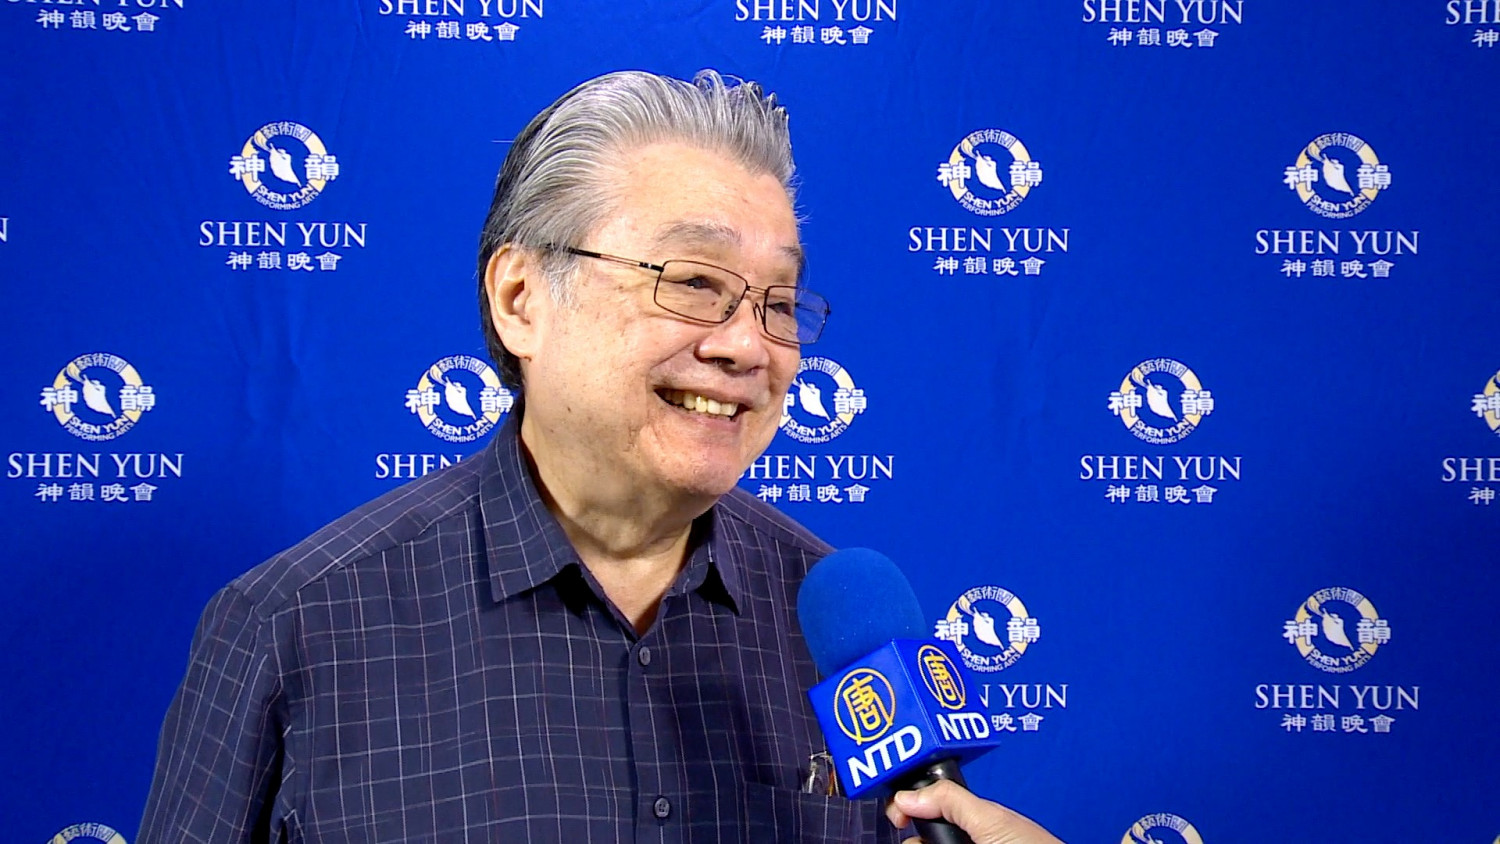 Pianist Appreciates the Grandeur of Chinese History Portrayed in Shen Yun